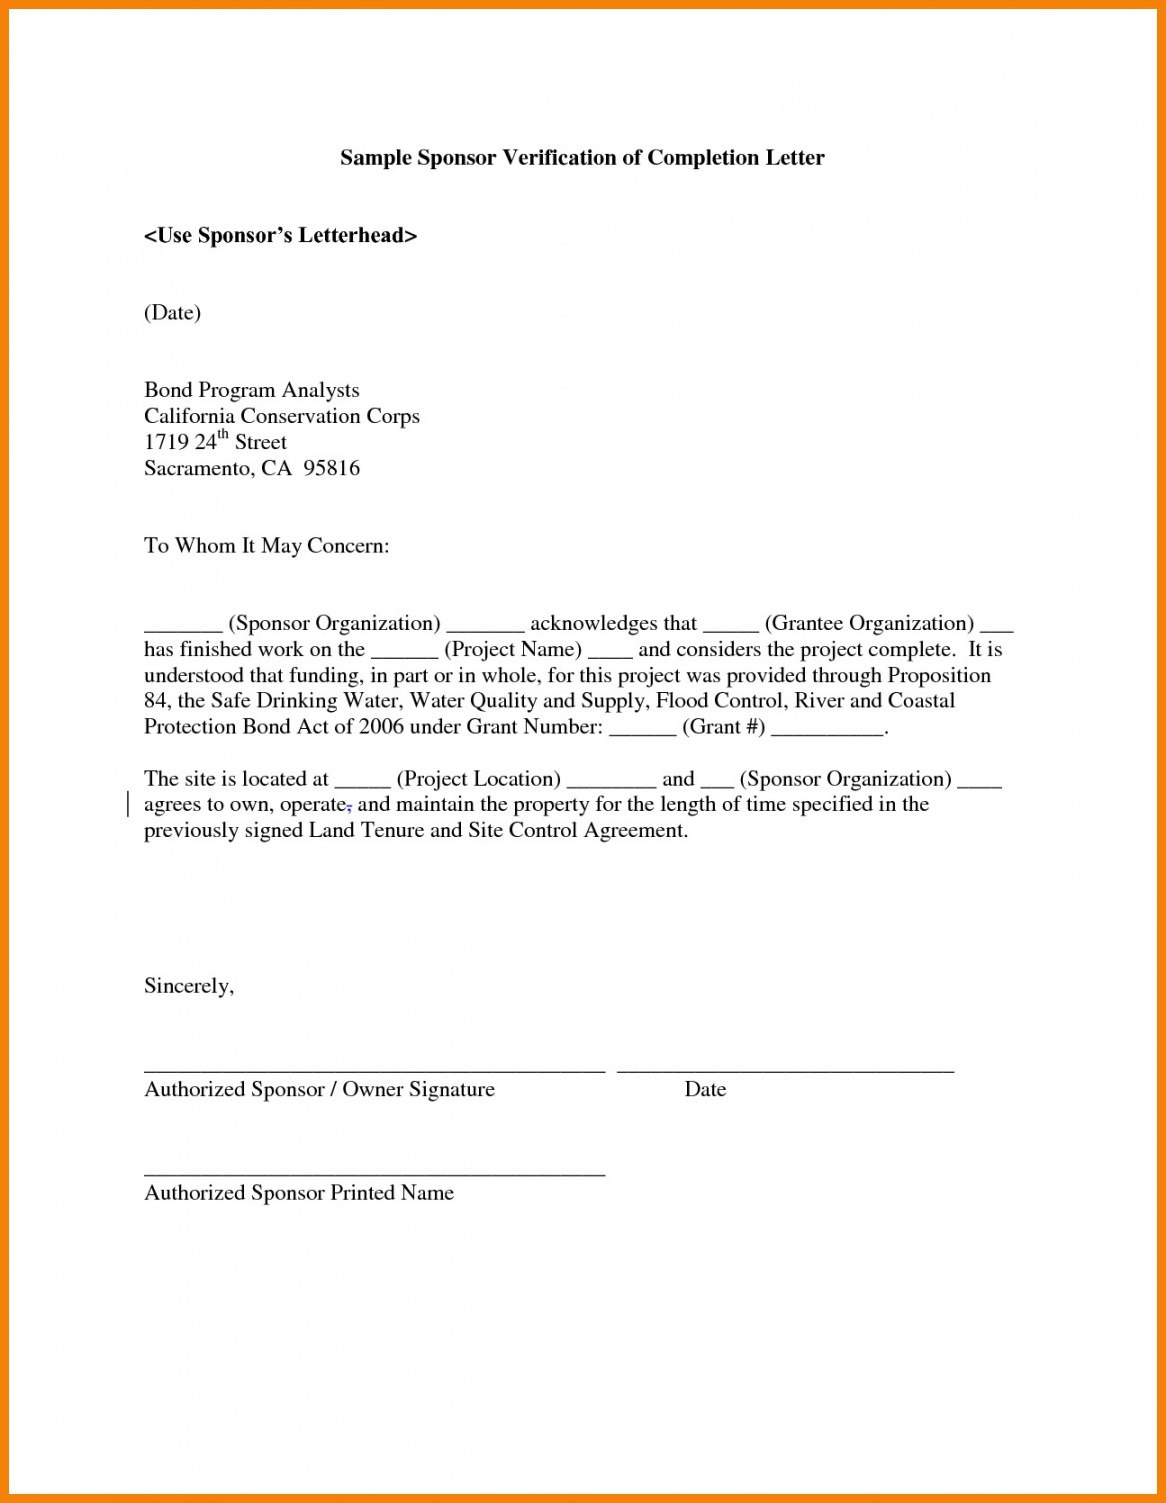 Free Sample Of Certificate Of Completion Of Construction Project In Certificate Of Completion Template Construction